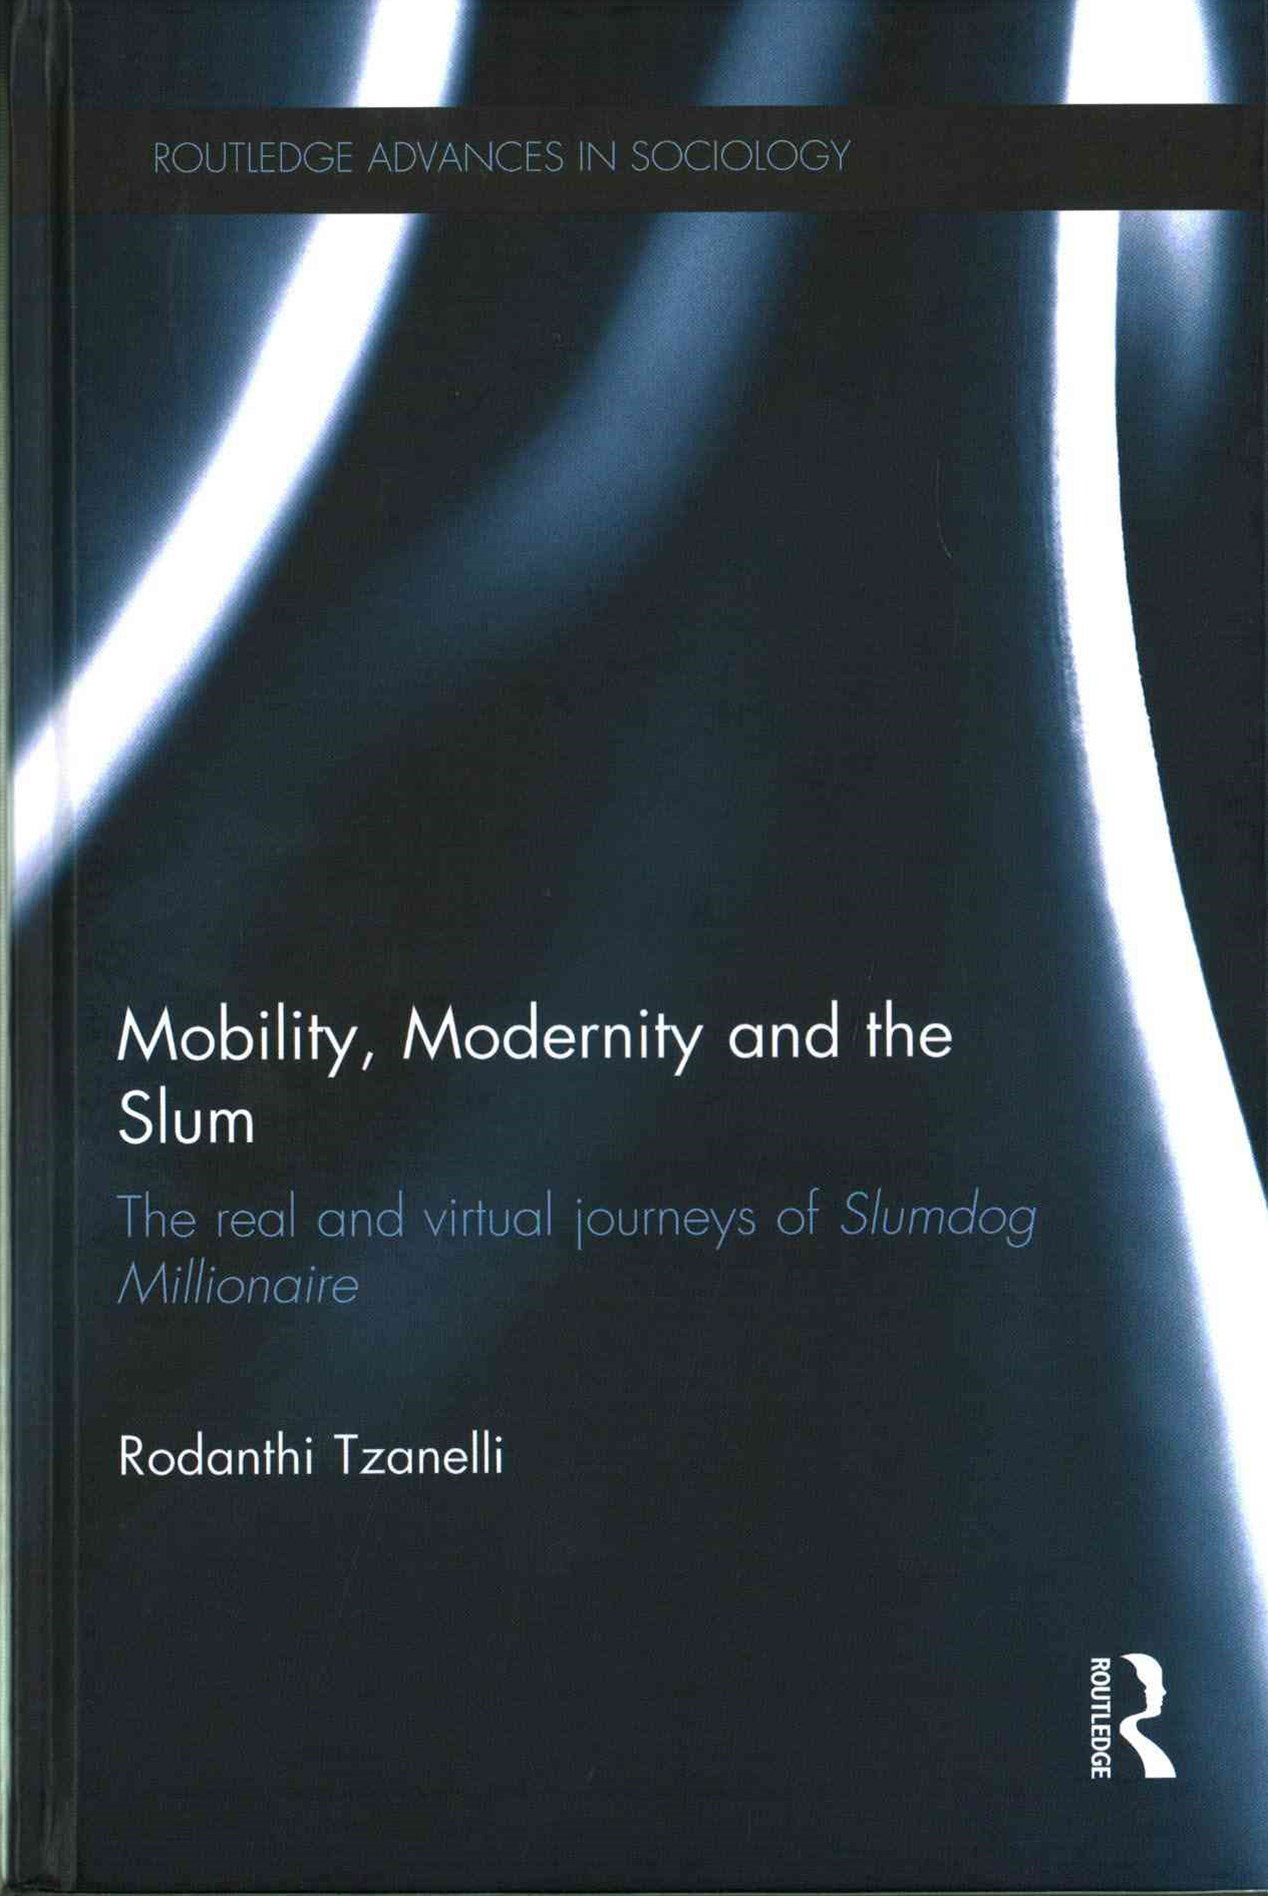 Mobility, Modernity and the Slum